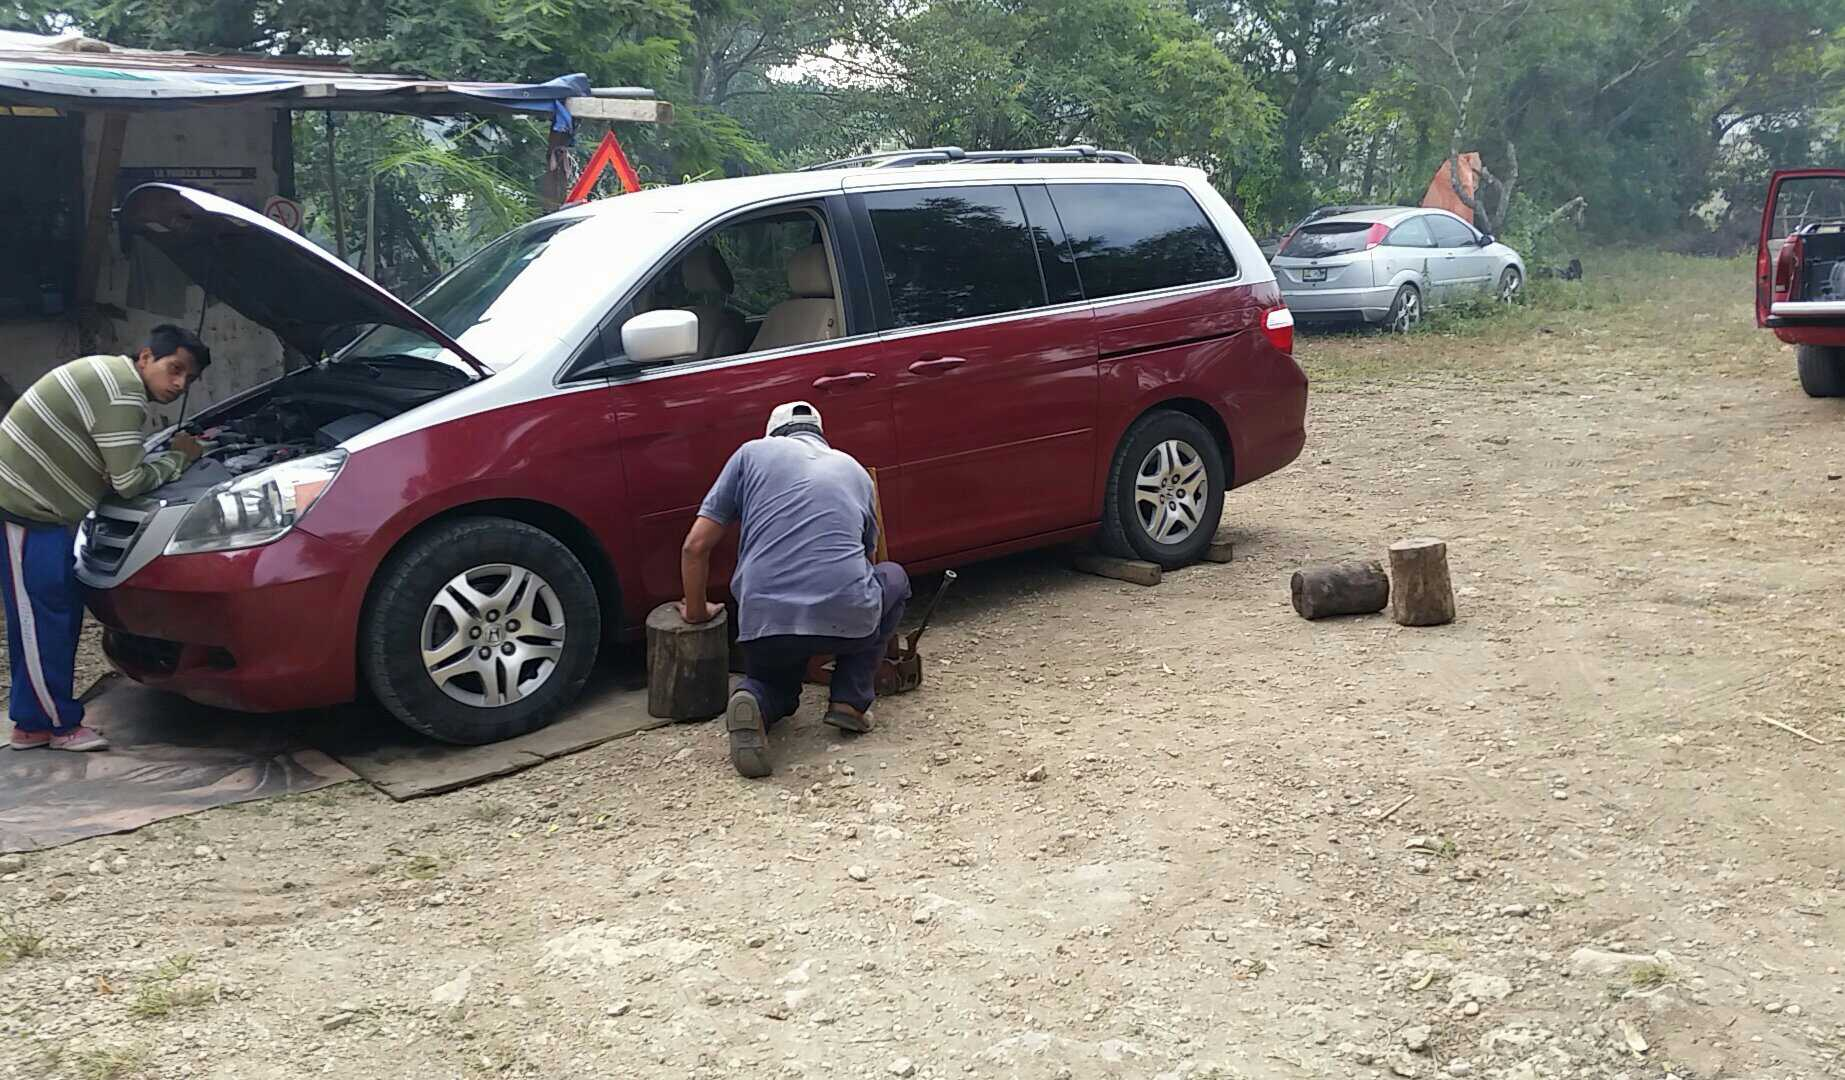 Car trouble in Mexico